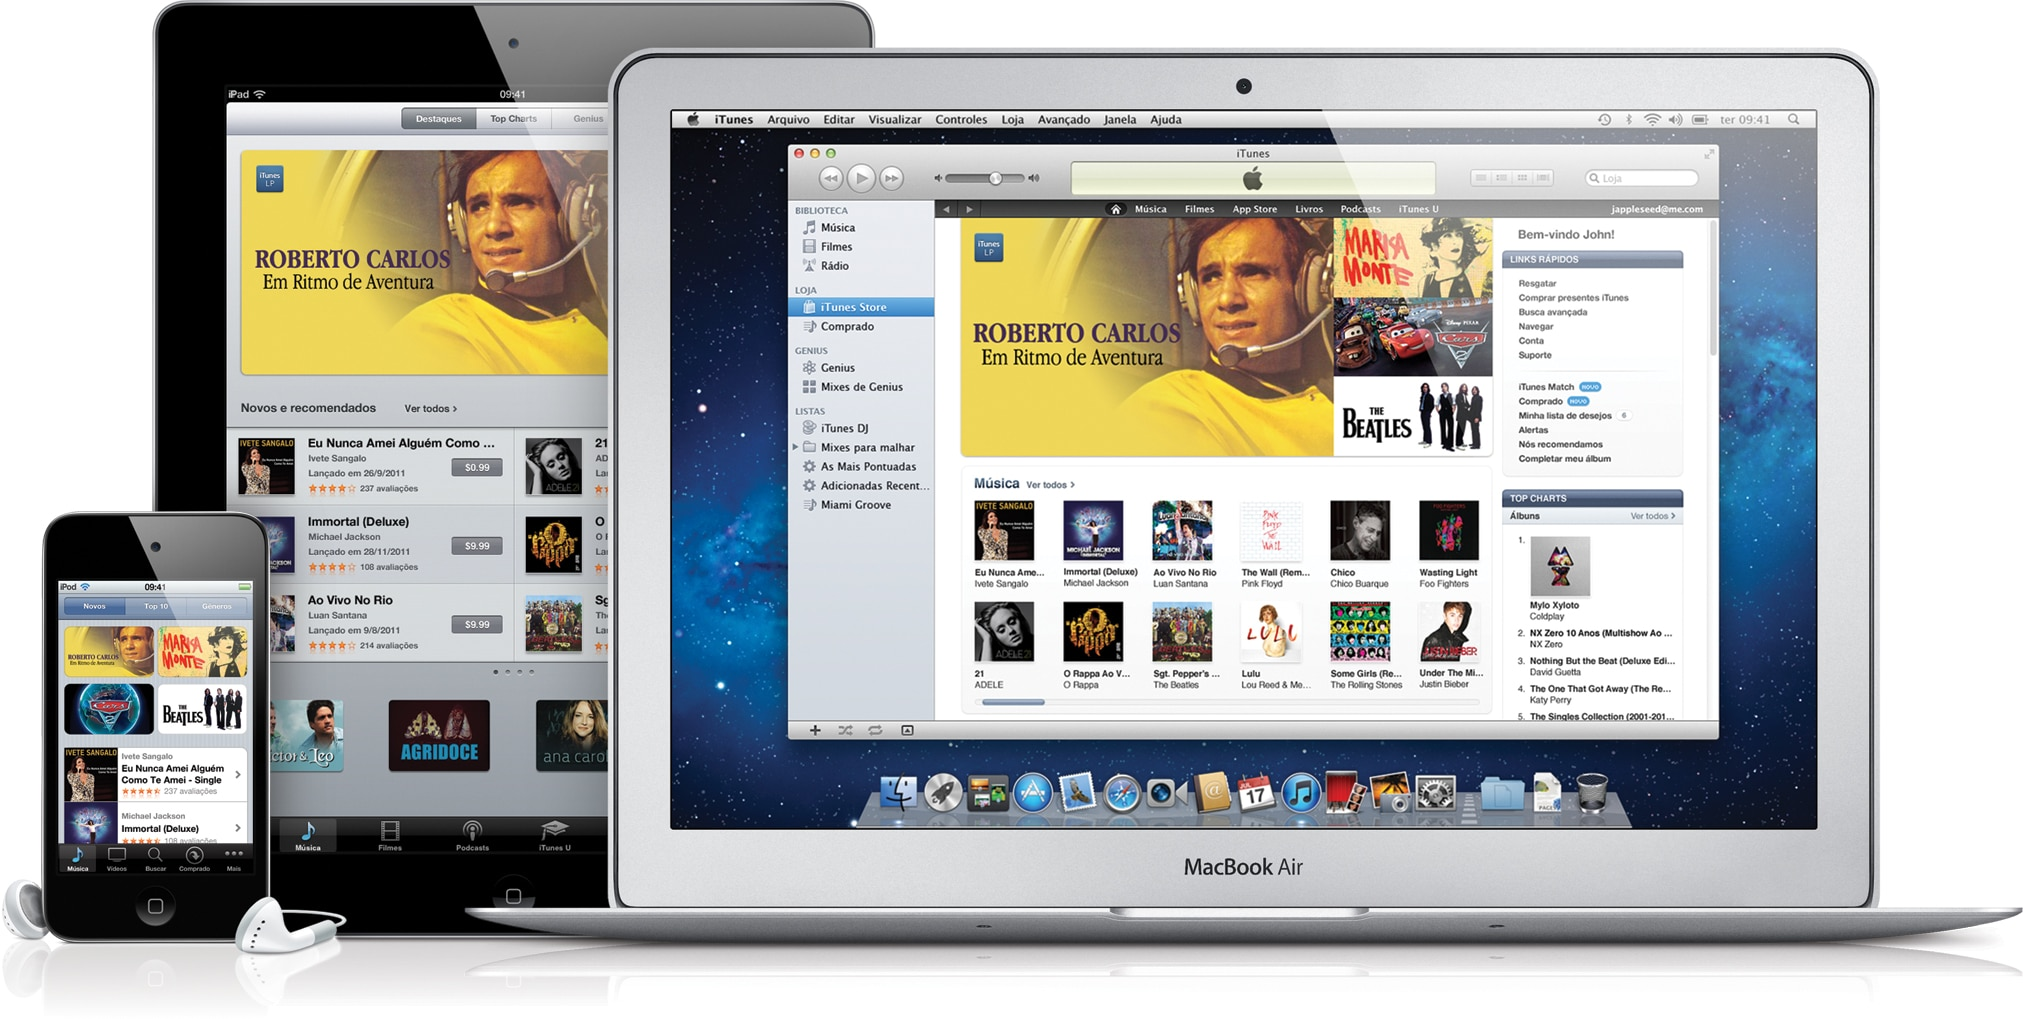 iTunes Store Brasil em iPod touch, iPad e MacBook Air